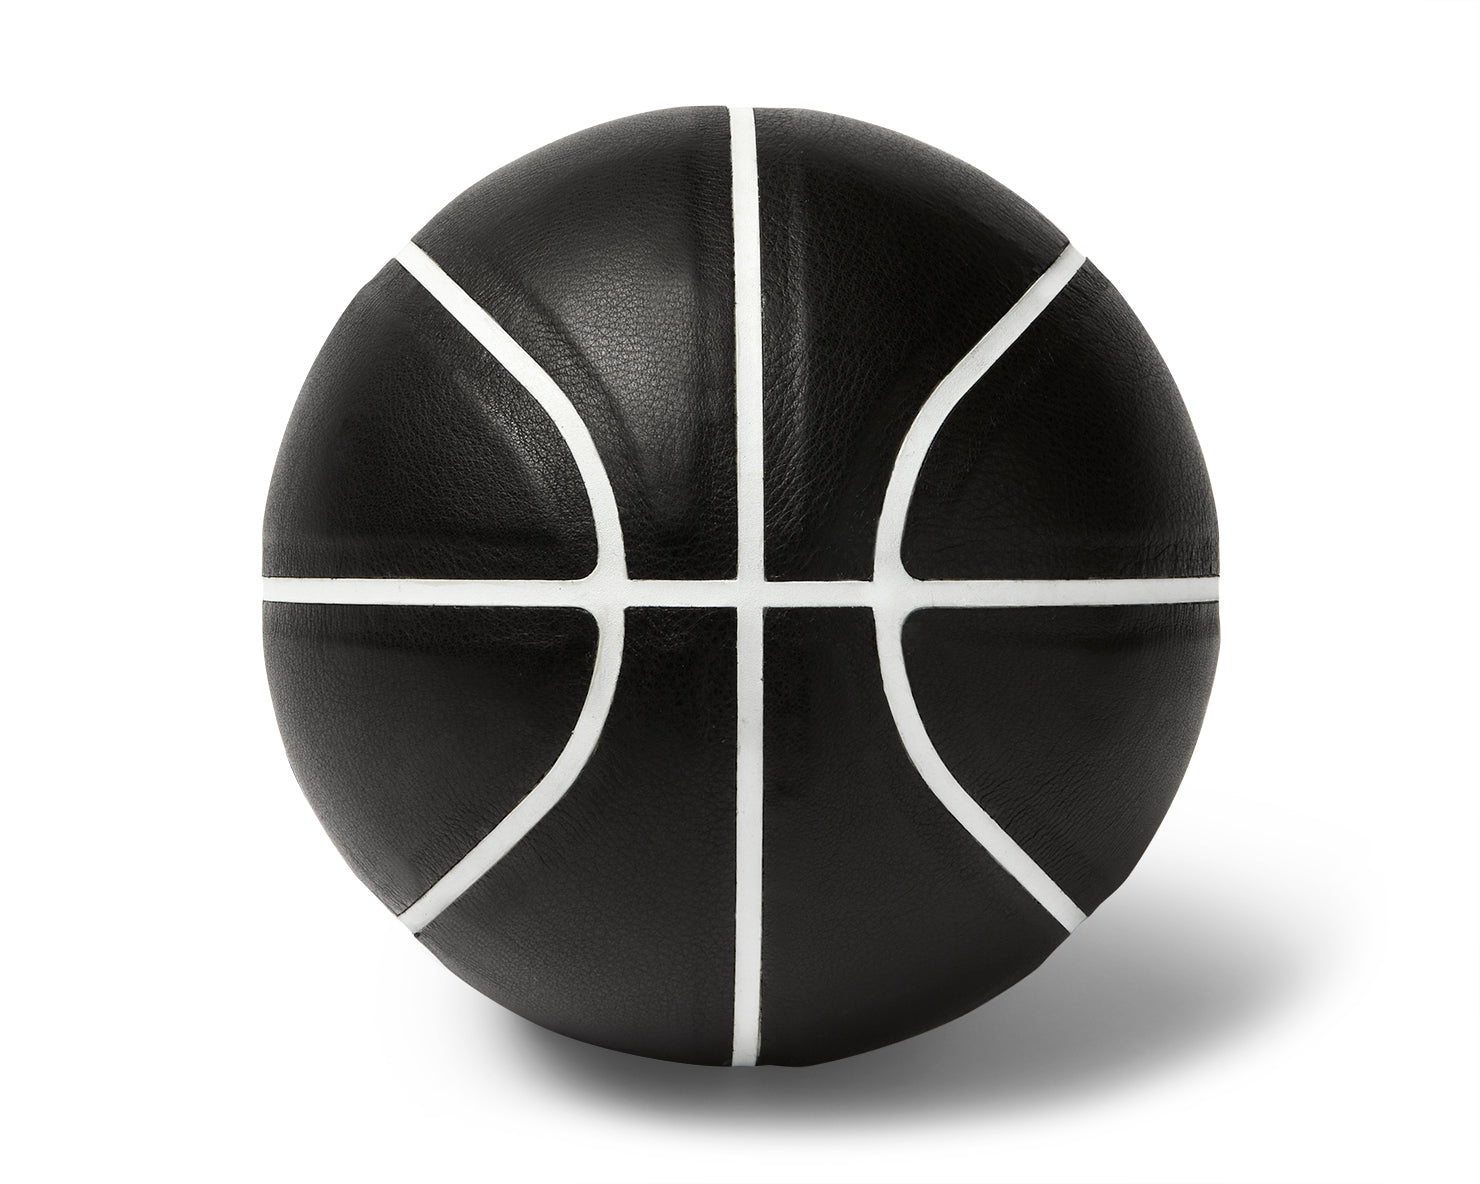 INDOOR MINI BASKETBALL | KILLSPENCER® - Black Leather with White Grip